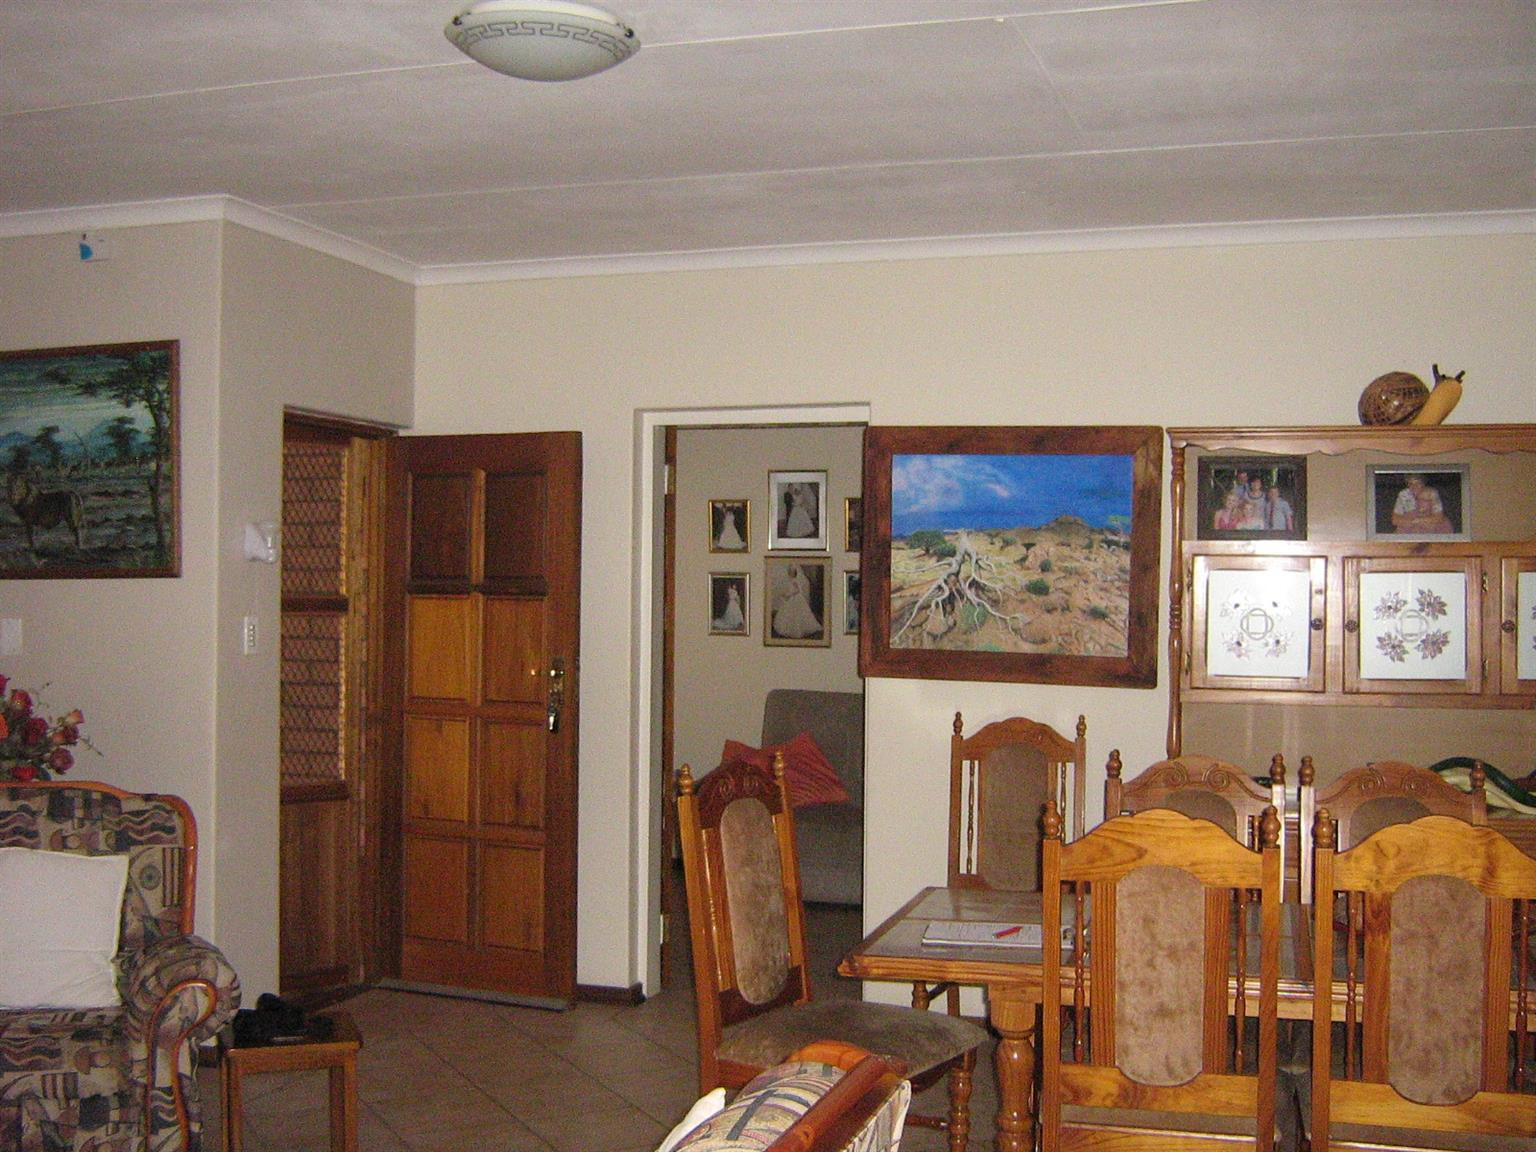 SECURE 2 BEDROOM TOWNHOUSE ON THE MARKET: